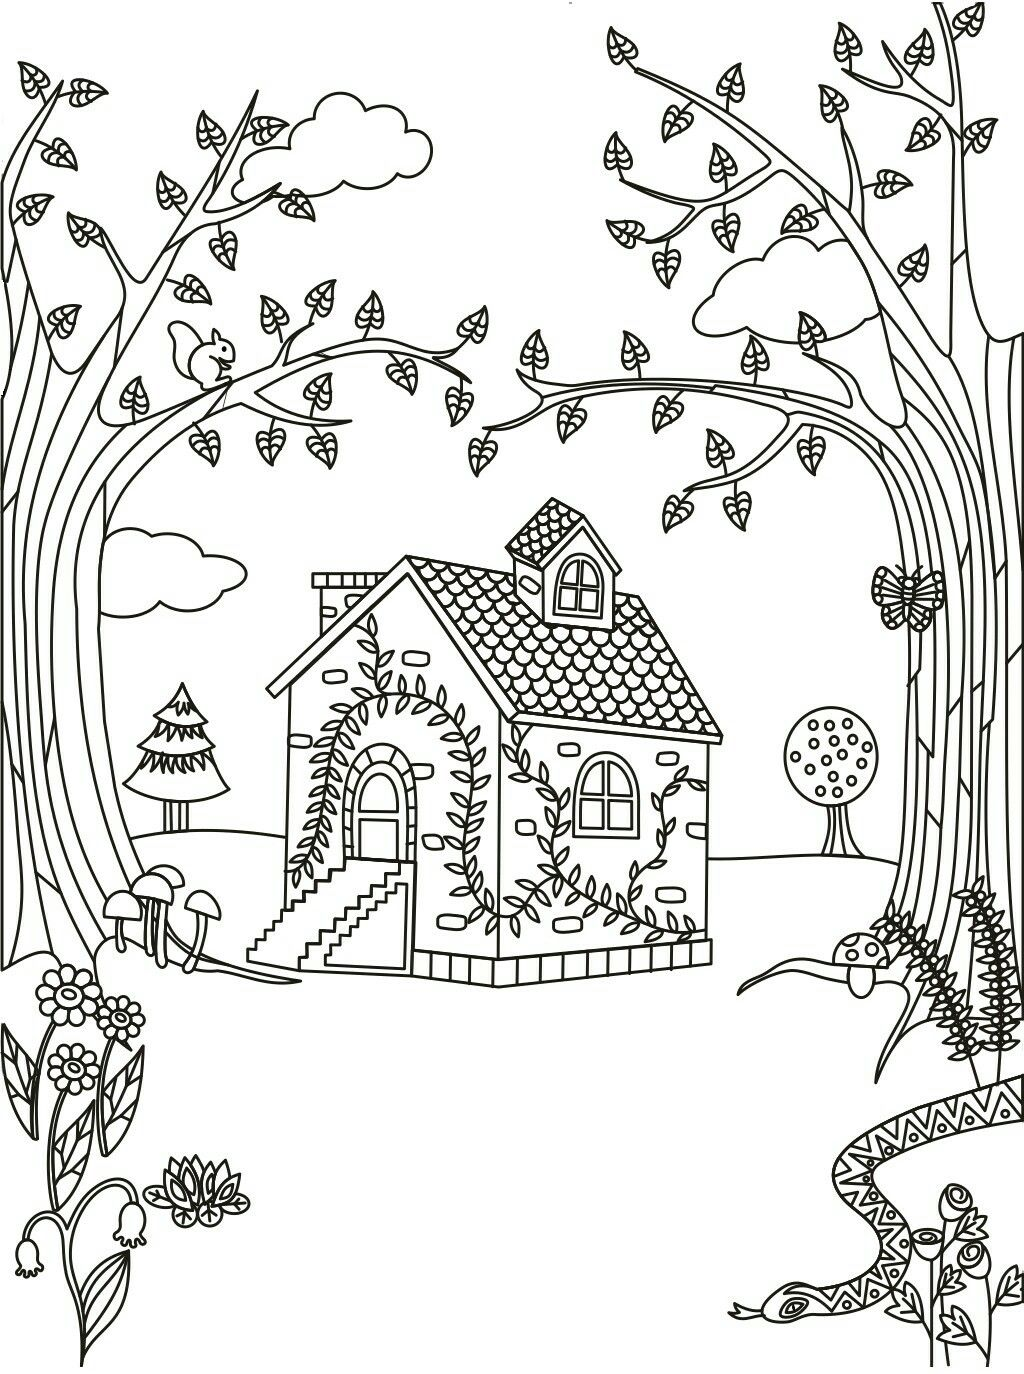 Pin By Rosalie Teaching Travel On Coloring 2 Coloring Books Toddler Coloring Book Coloring Pages